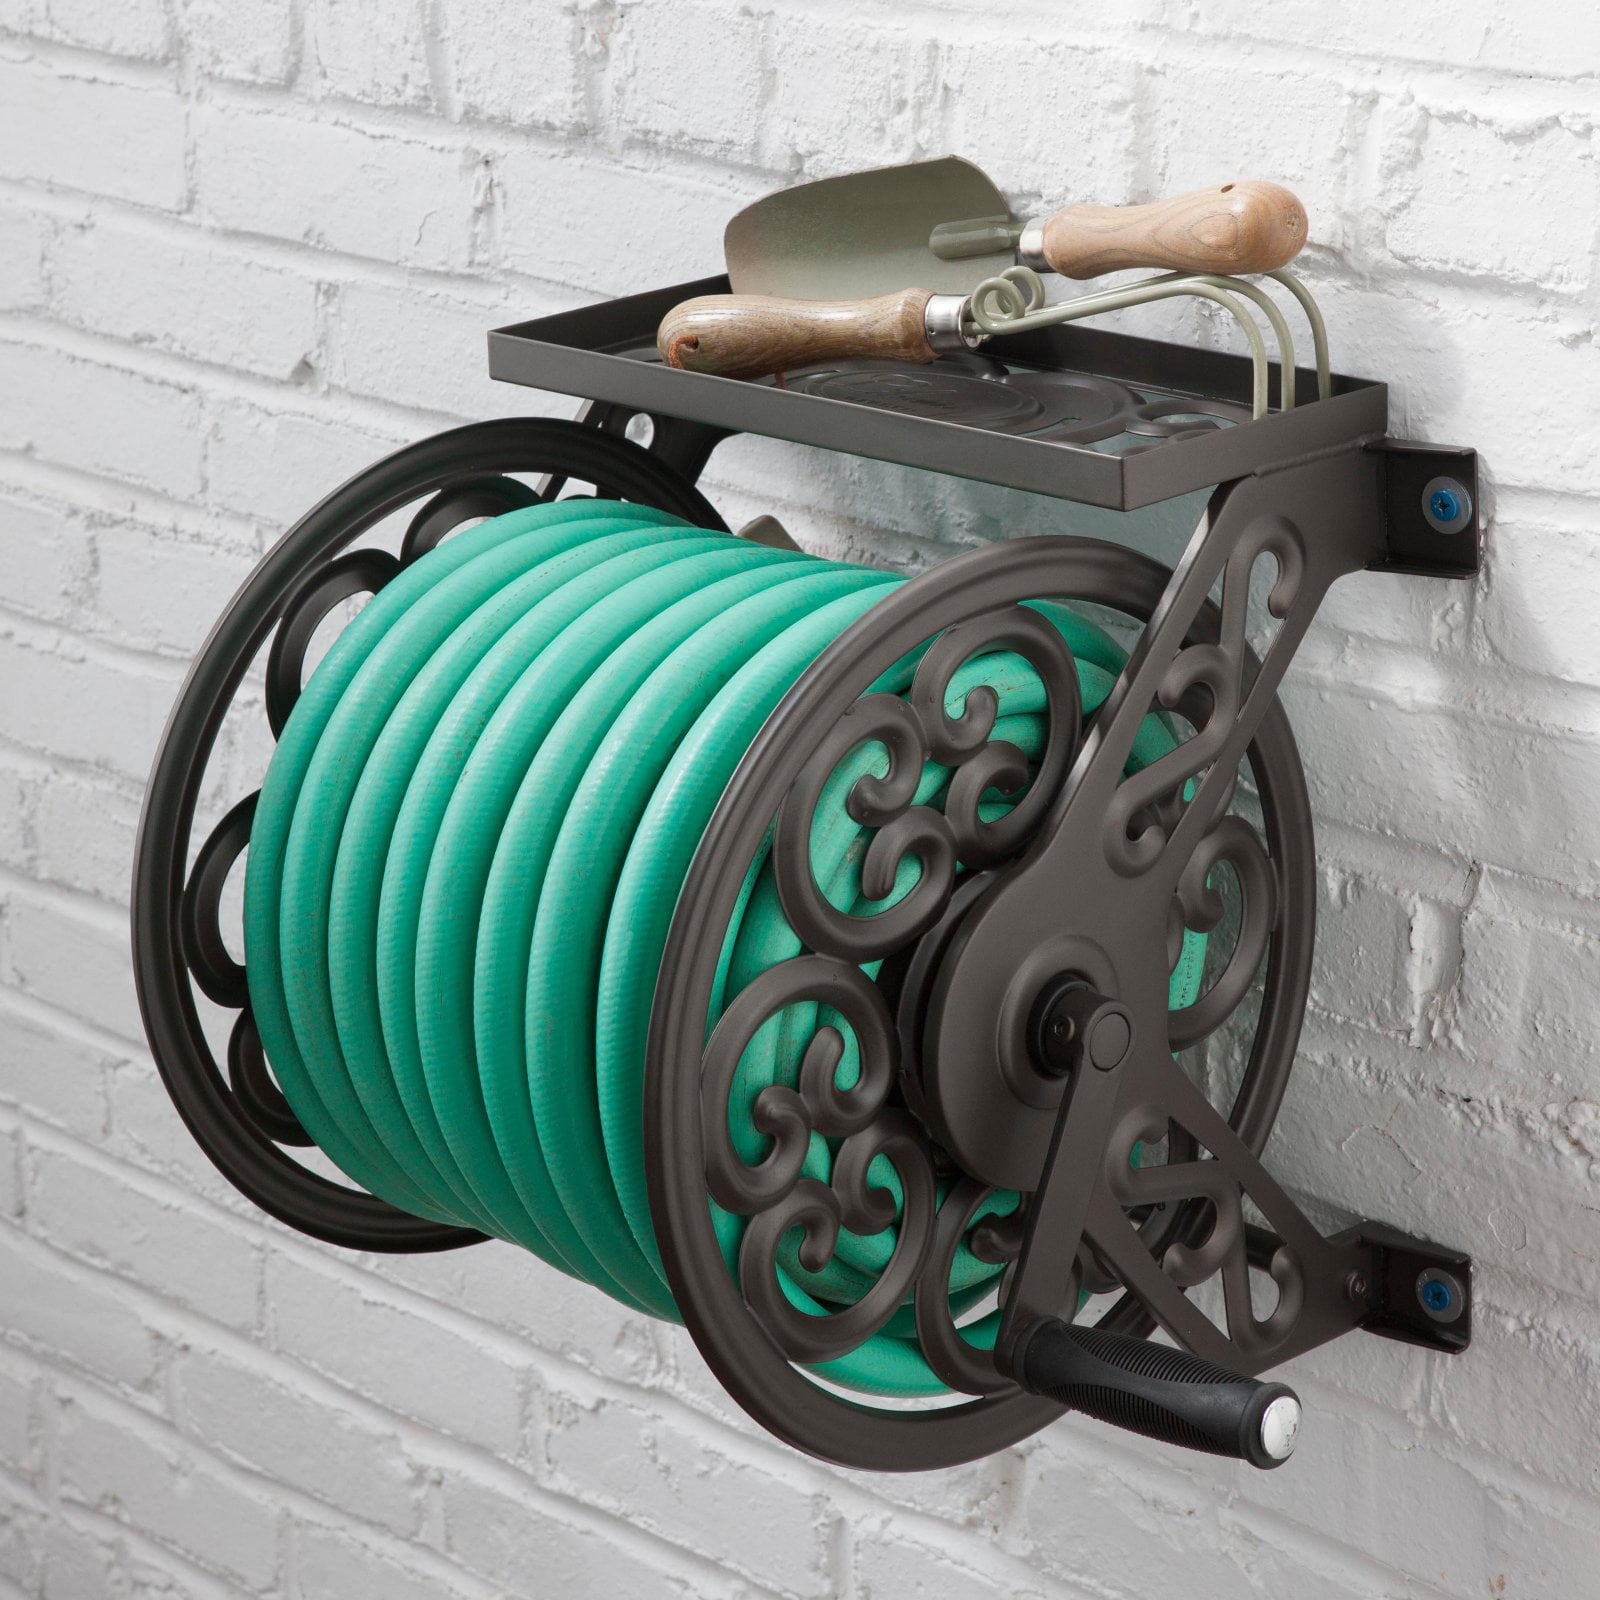 Liberty Decorative Wall-Mounted Hose Reel by Liberty Garden Products